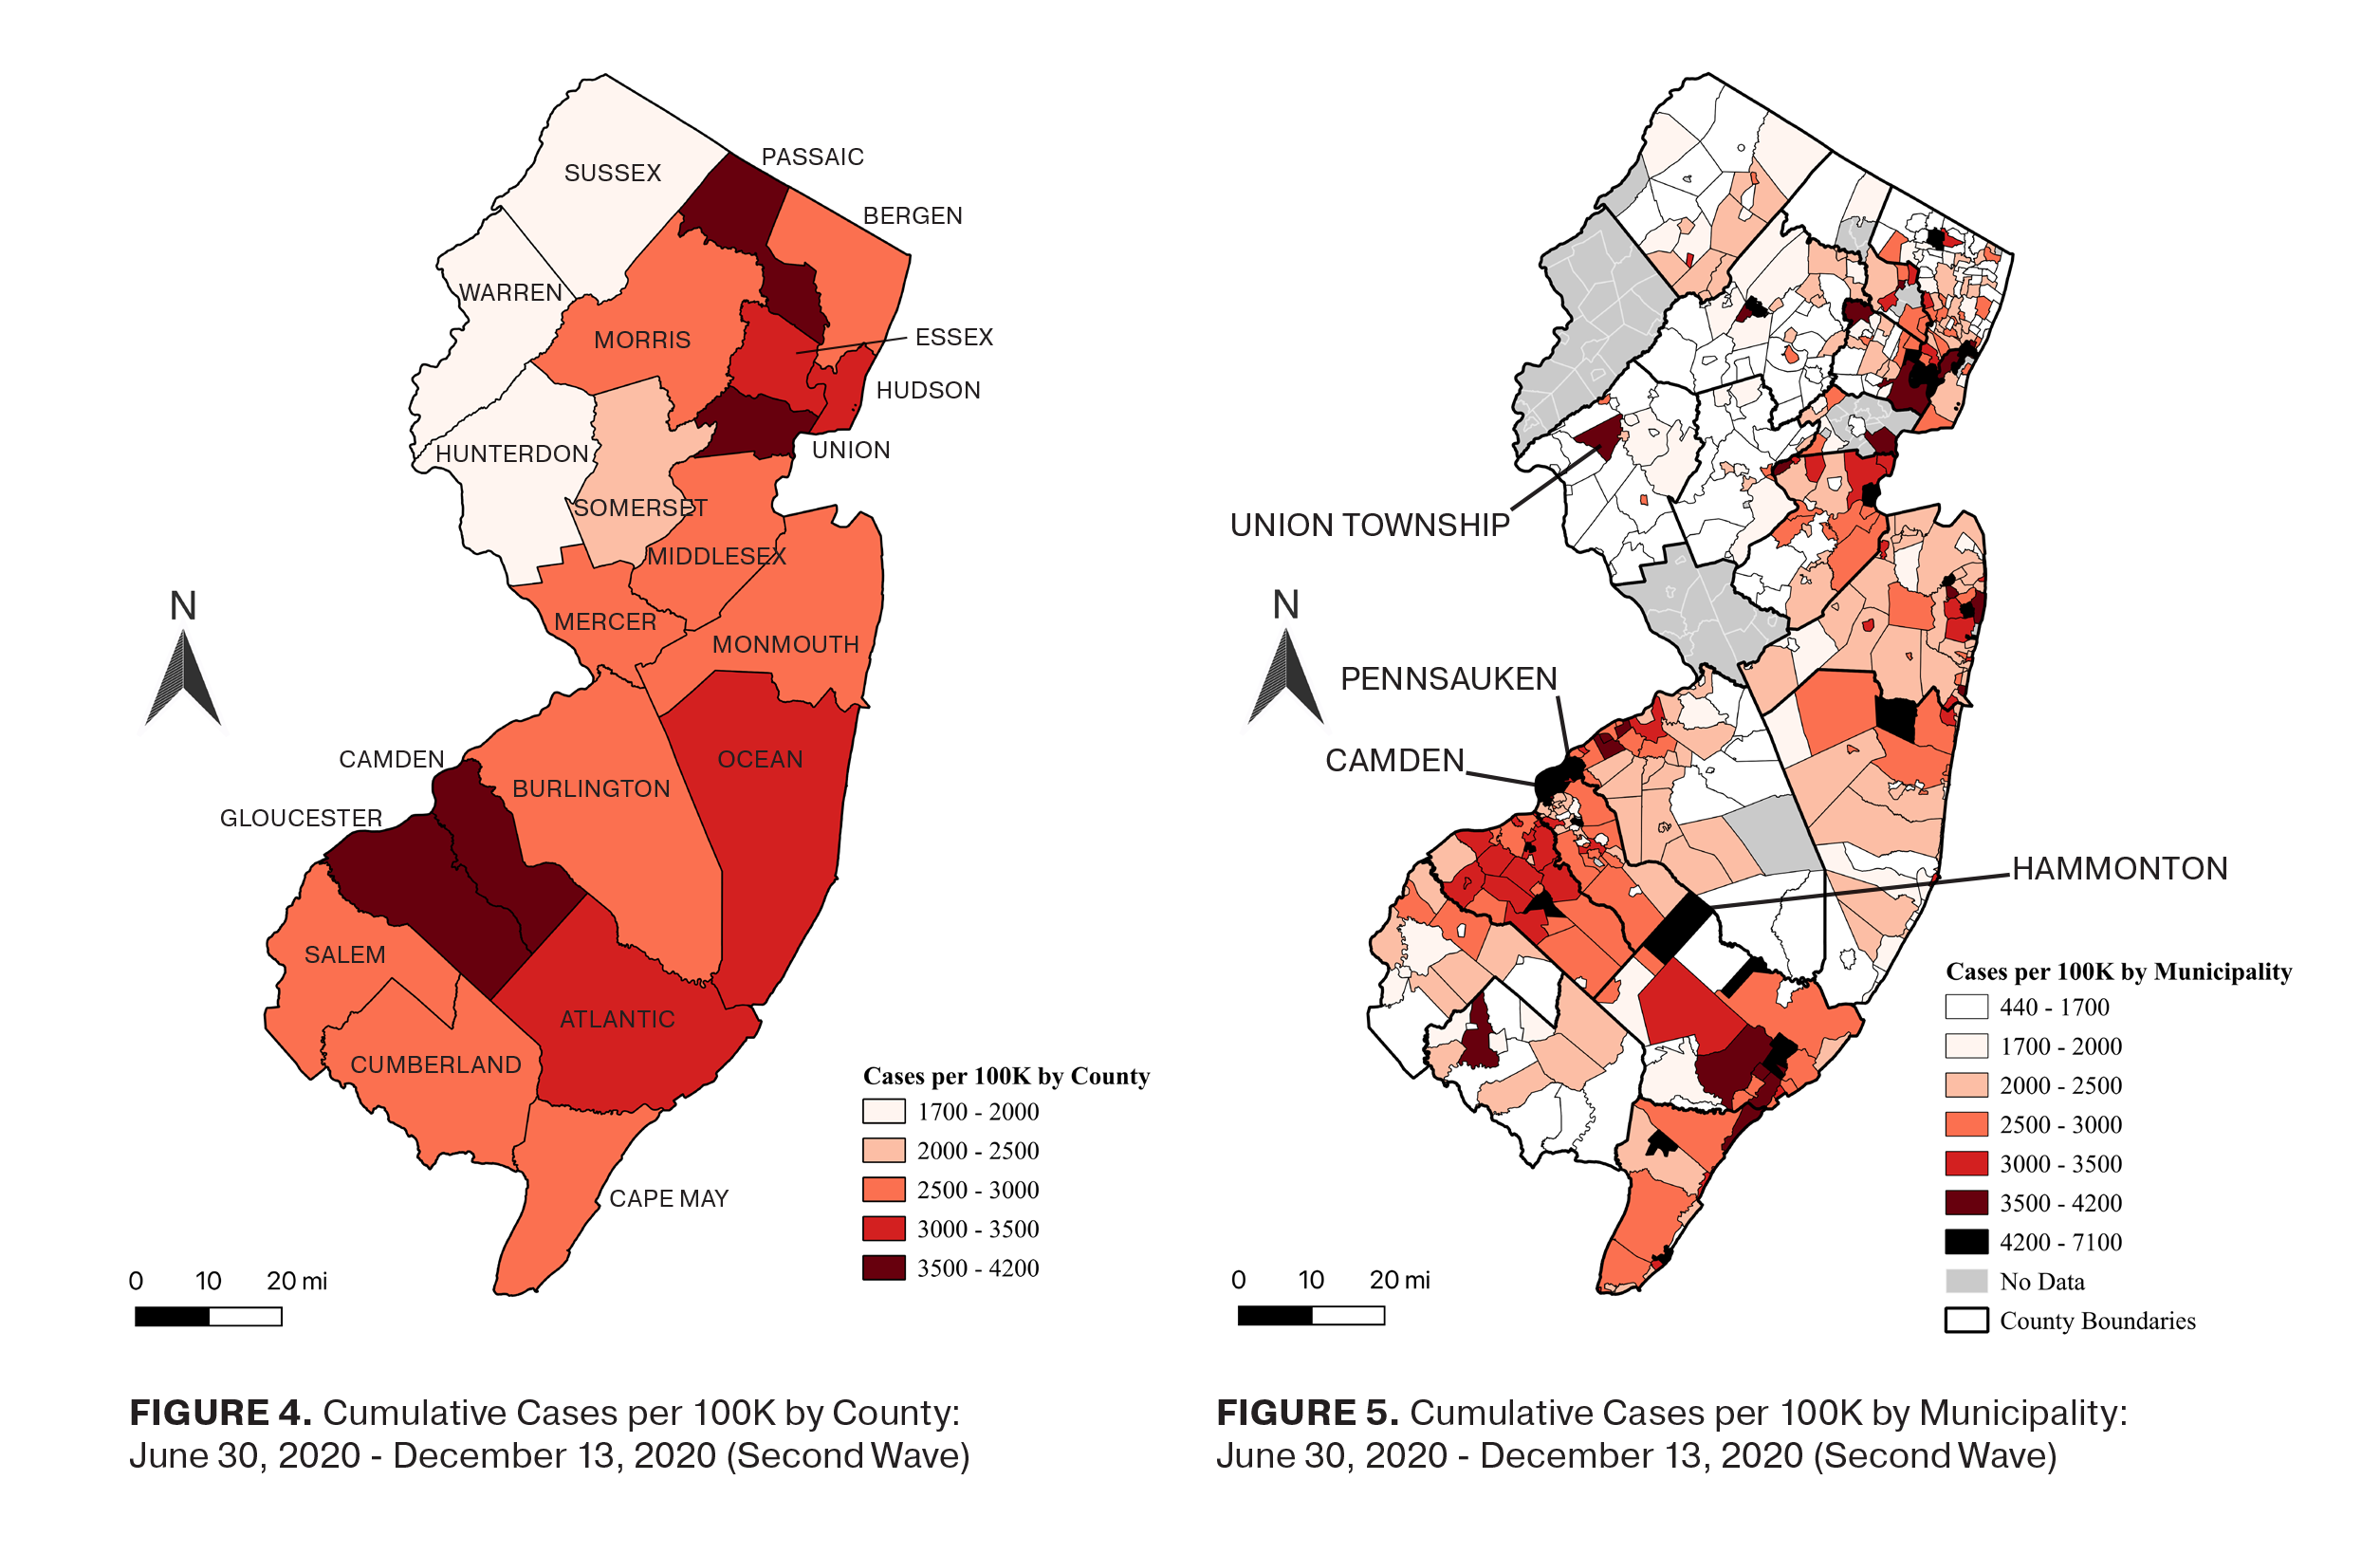 Municipal Variation in COVID-19 Case Rates in New Jersey